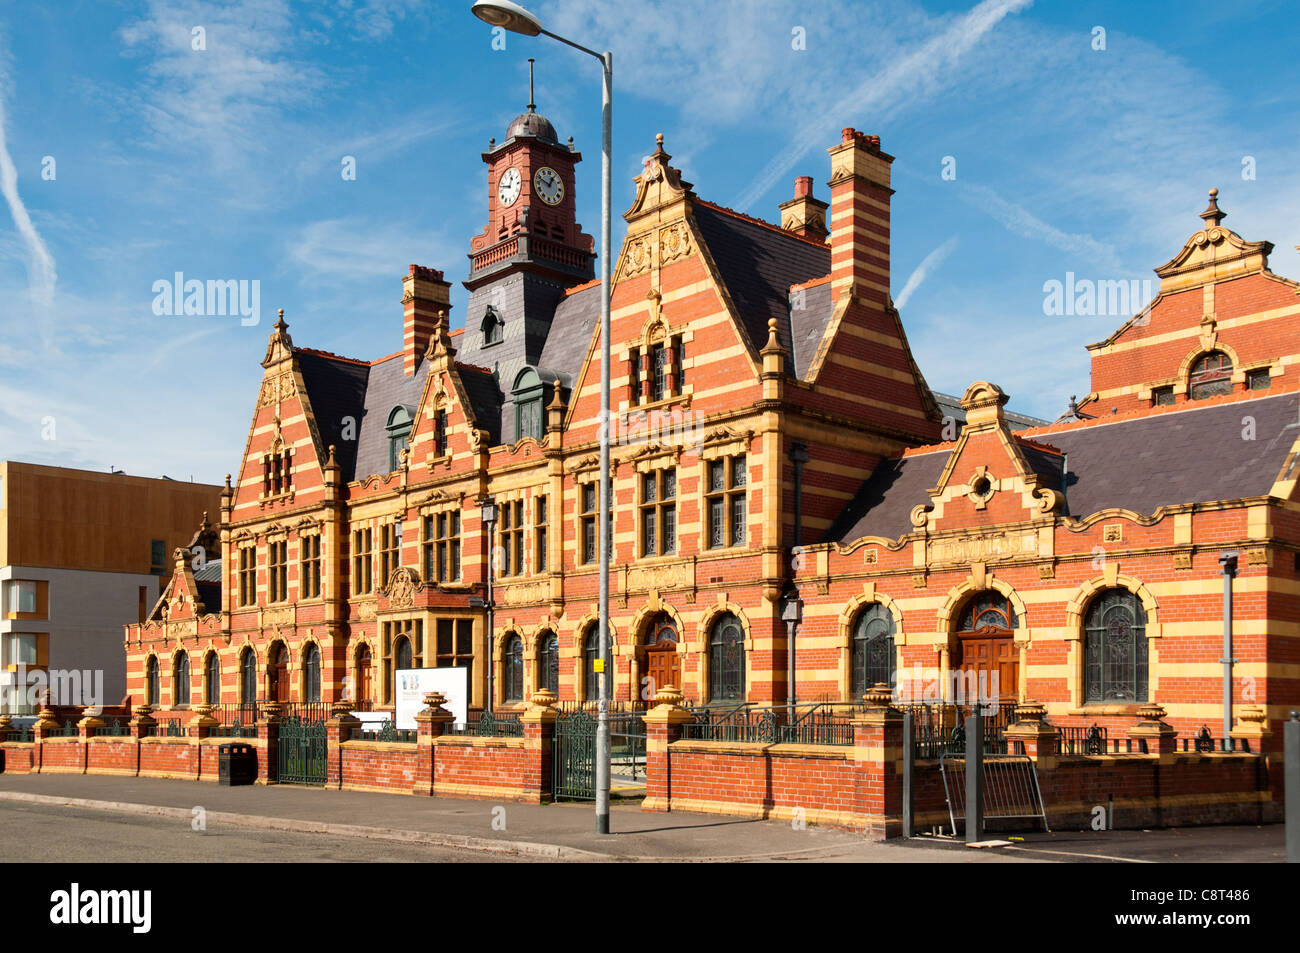 Victoria Baths, Manchester, England, UK. Designed by the City Surveyor T. de Courcy Meade and his assistant Arthur - Stock Image